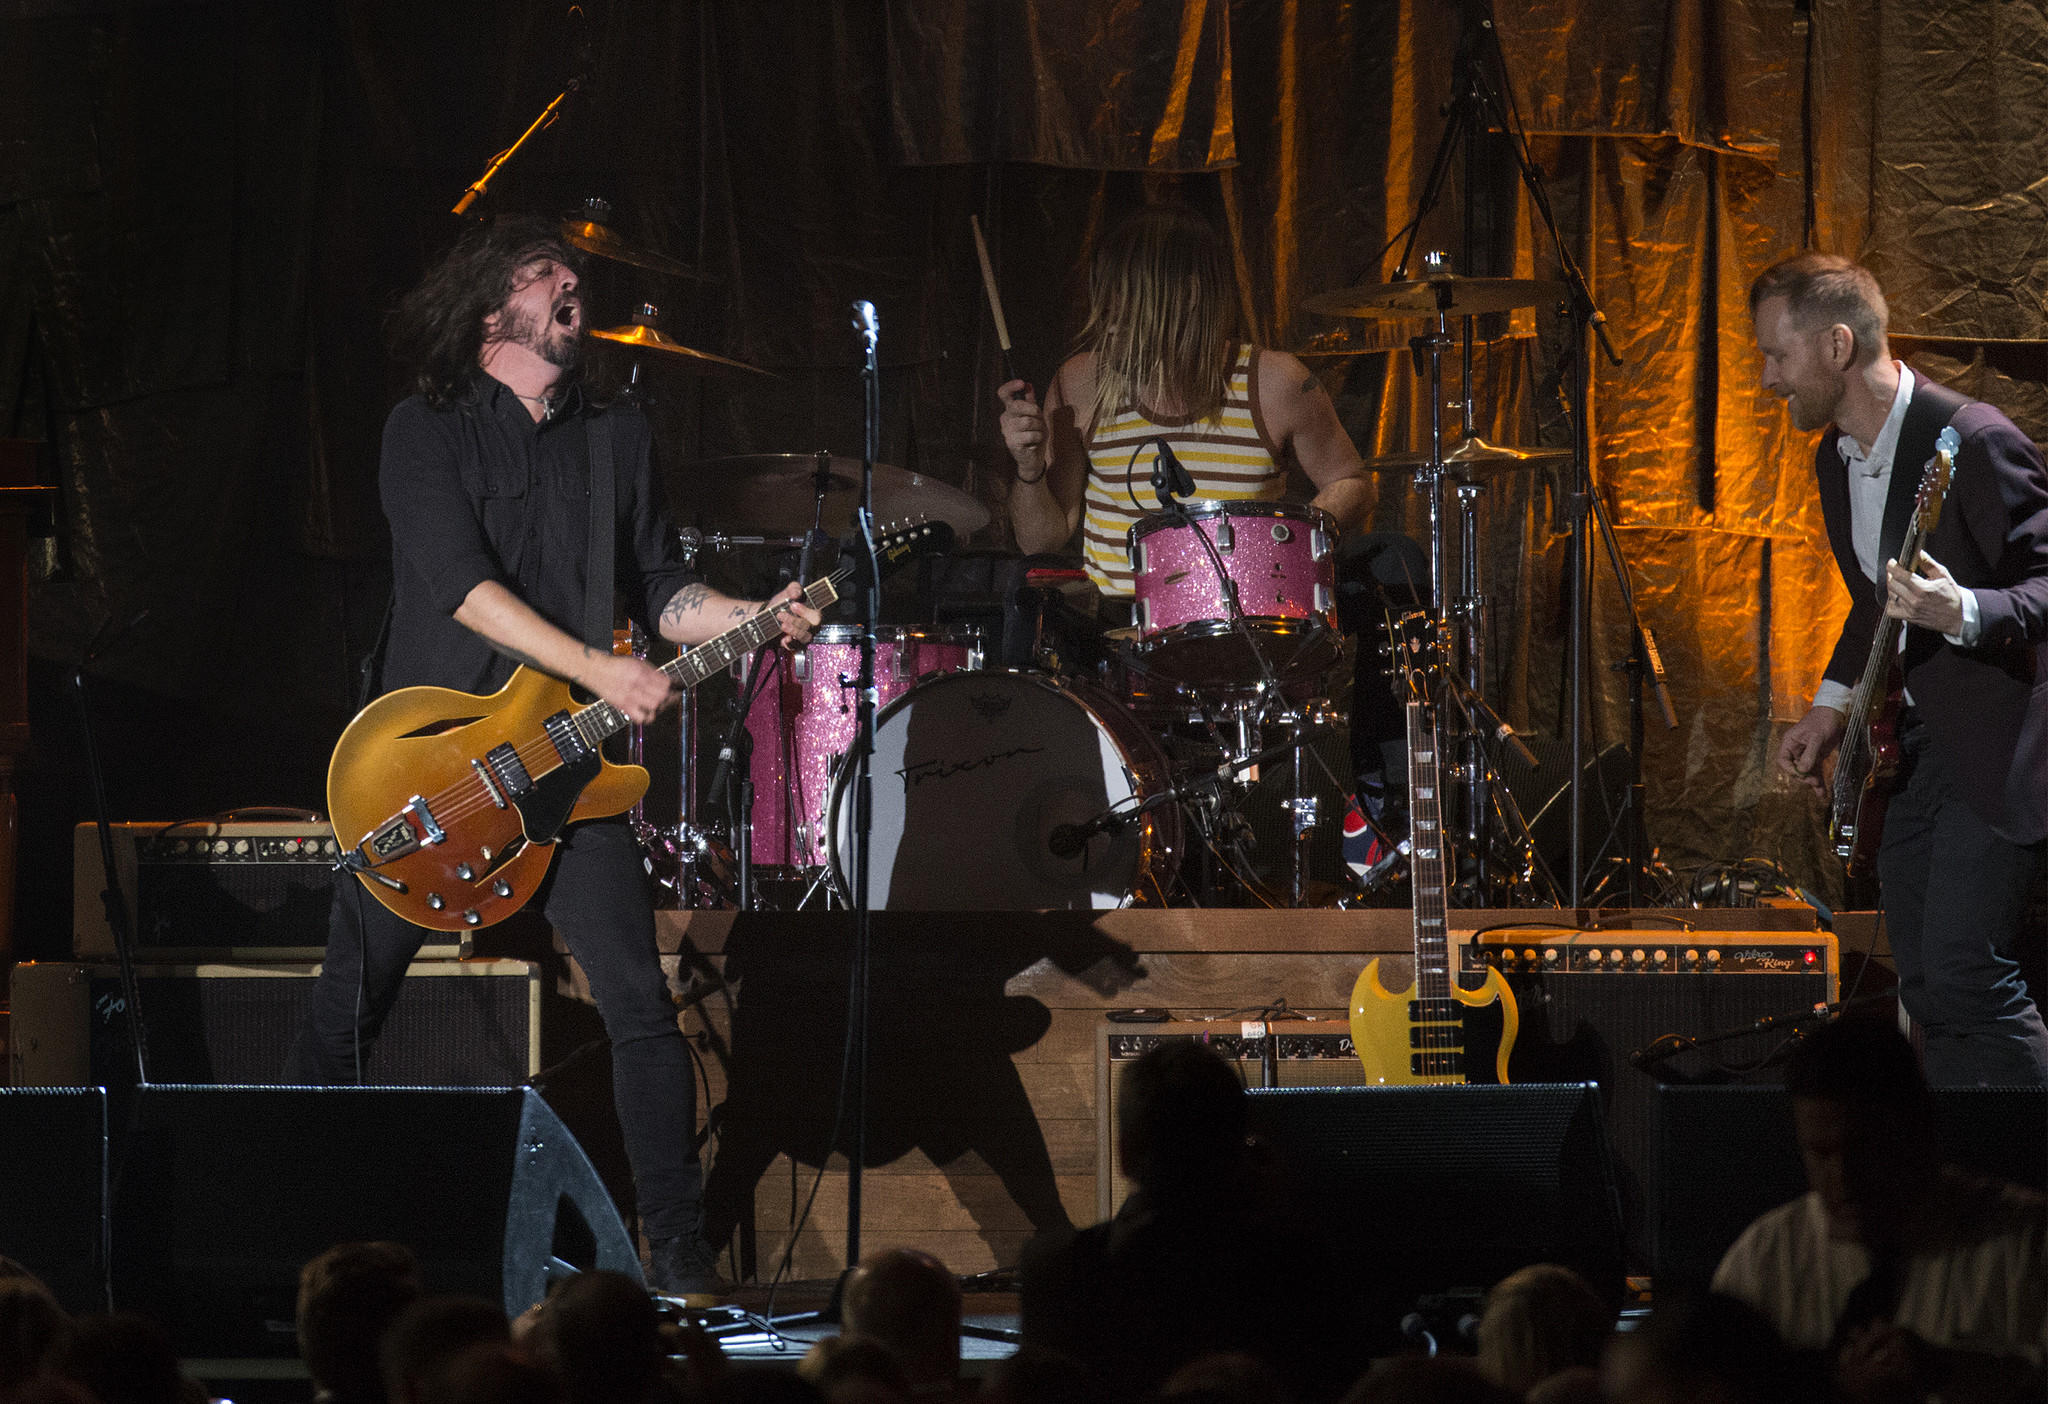 Watch Dave Grohl's 8-year-old daughter play with Foo Fighters